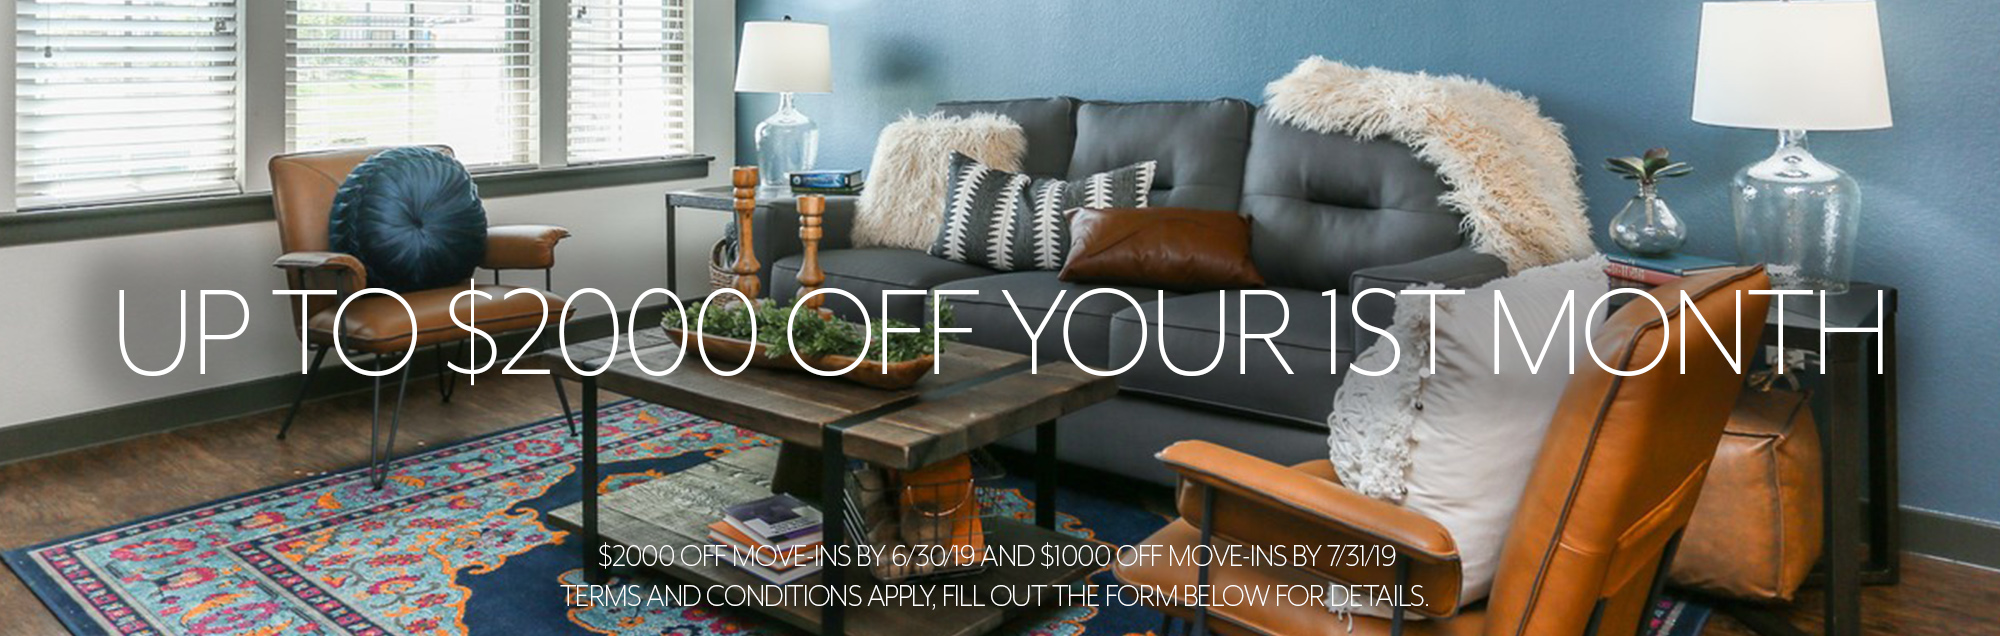 Claim Up To $2000 Off Your First Month Of Rent Special Image